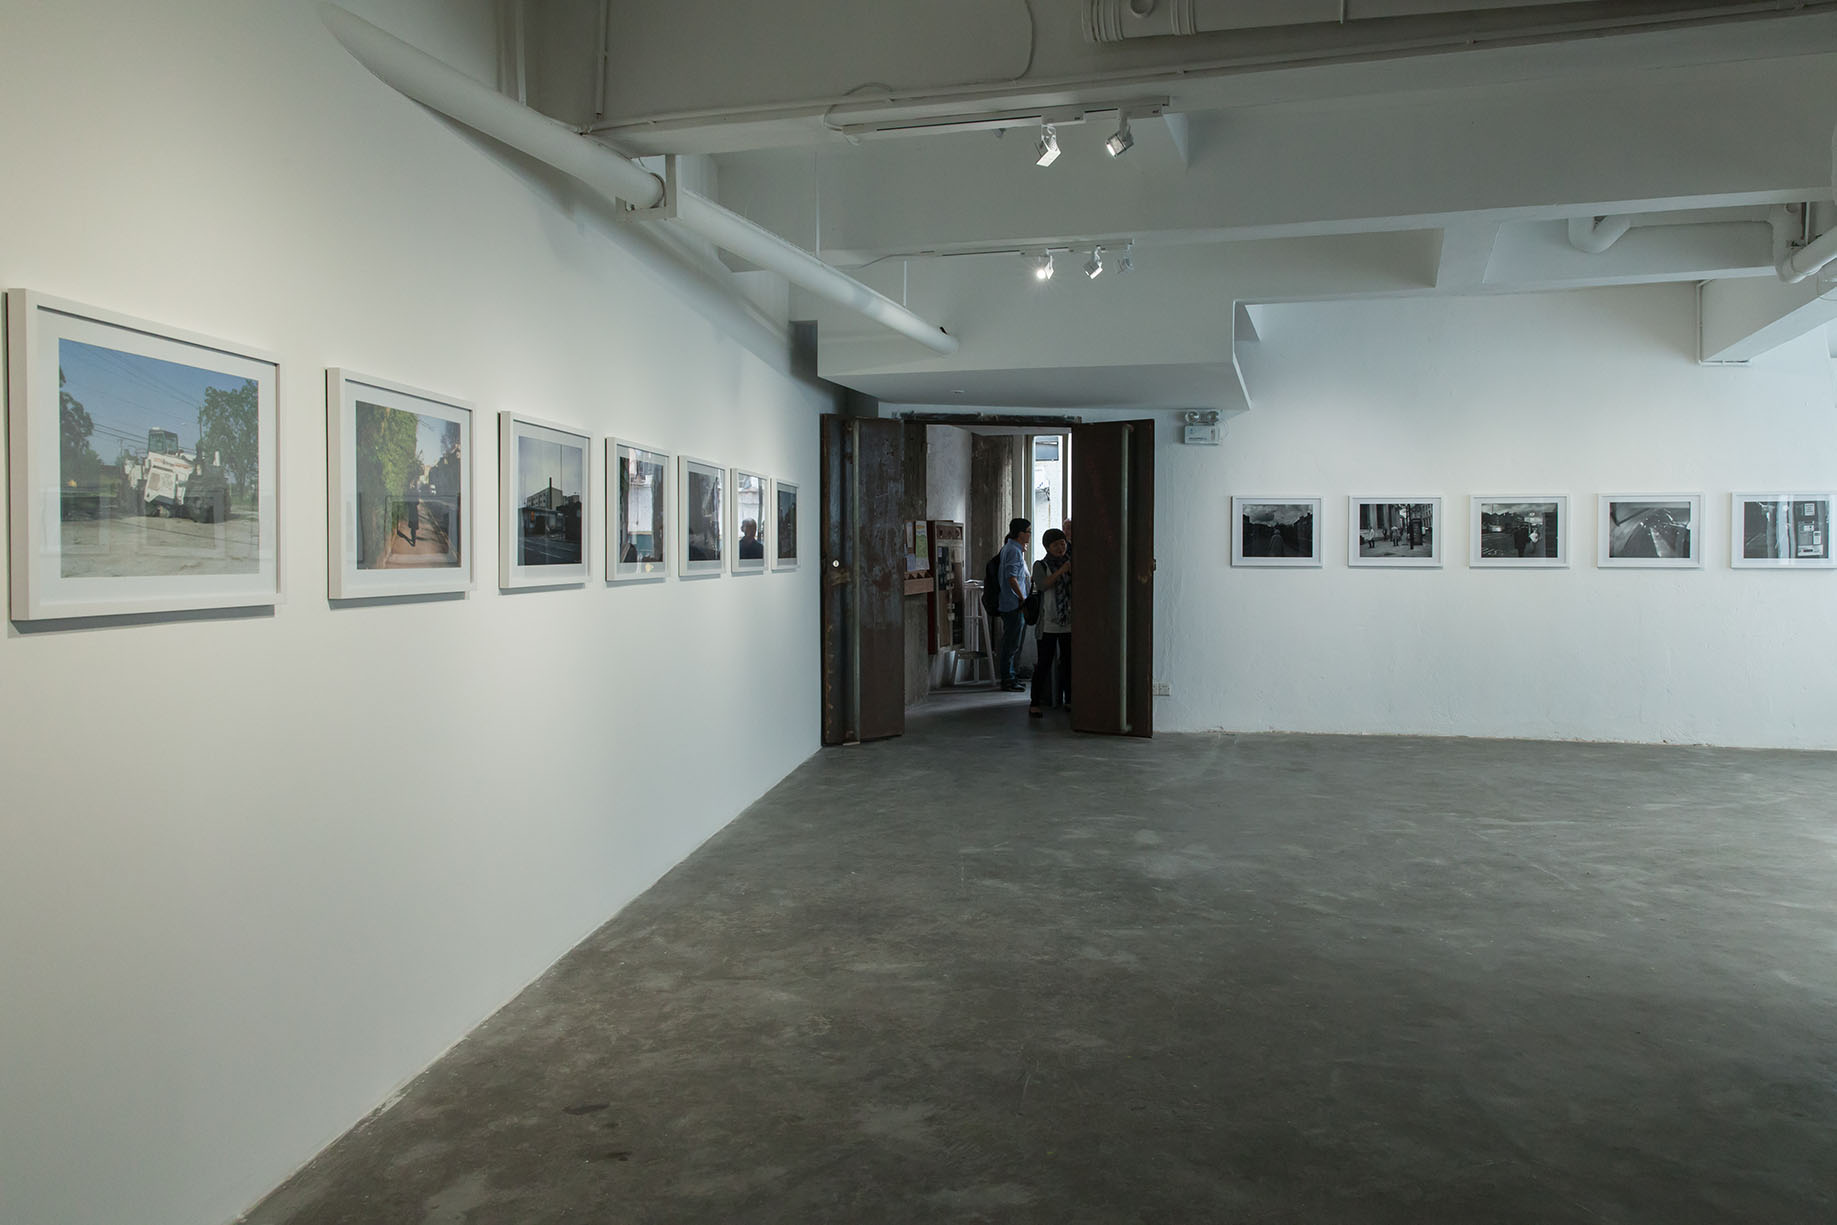 x01-展览现场 exhibition view